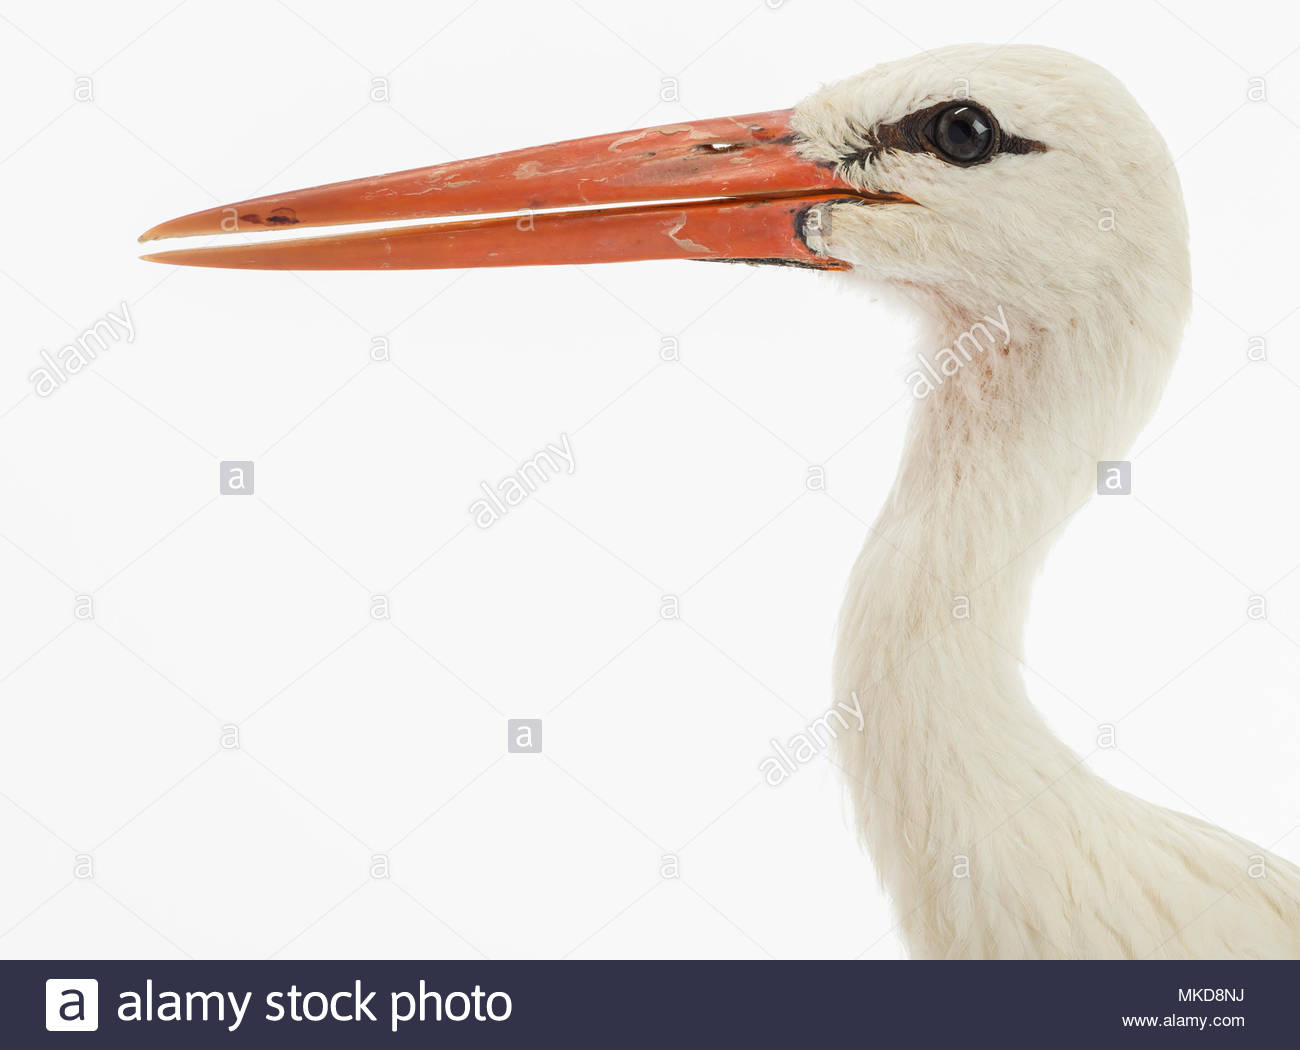 White stork, (Ciconia ciconia), isolated on white Mulhouse Zoological and Botanical Park, France - Stock Image